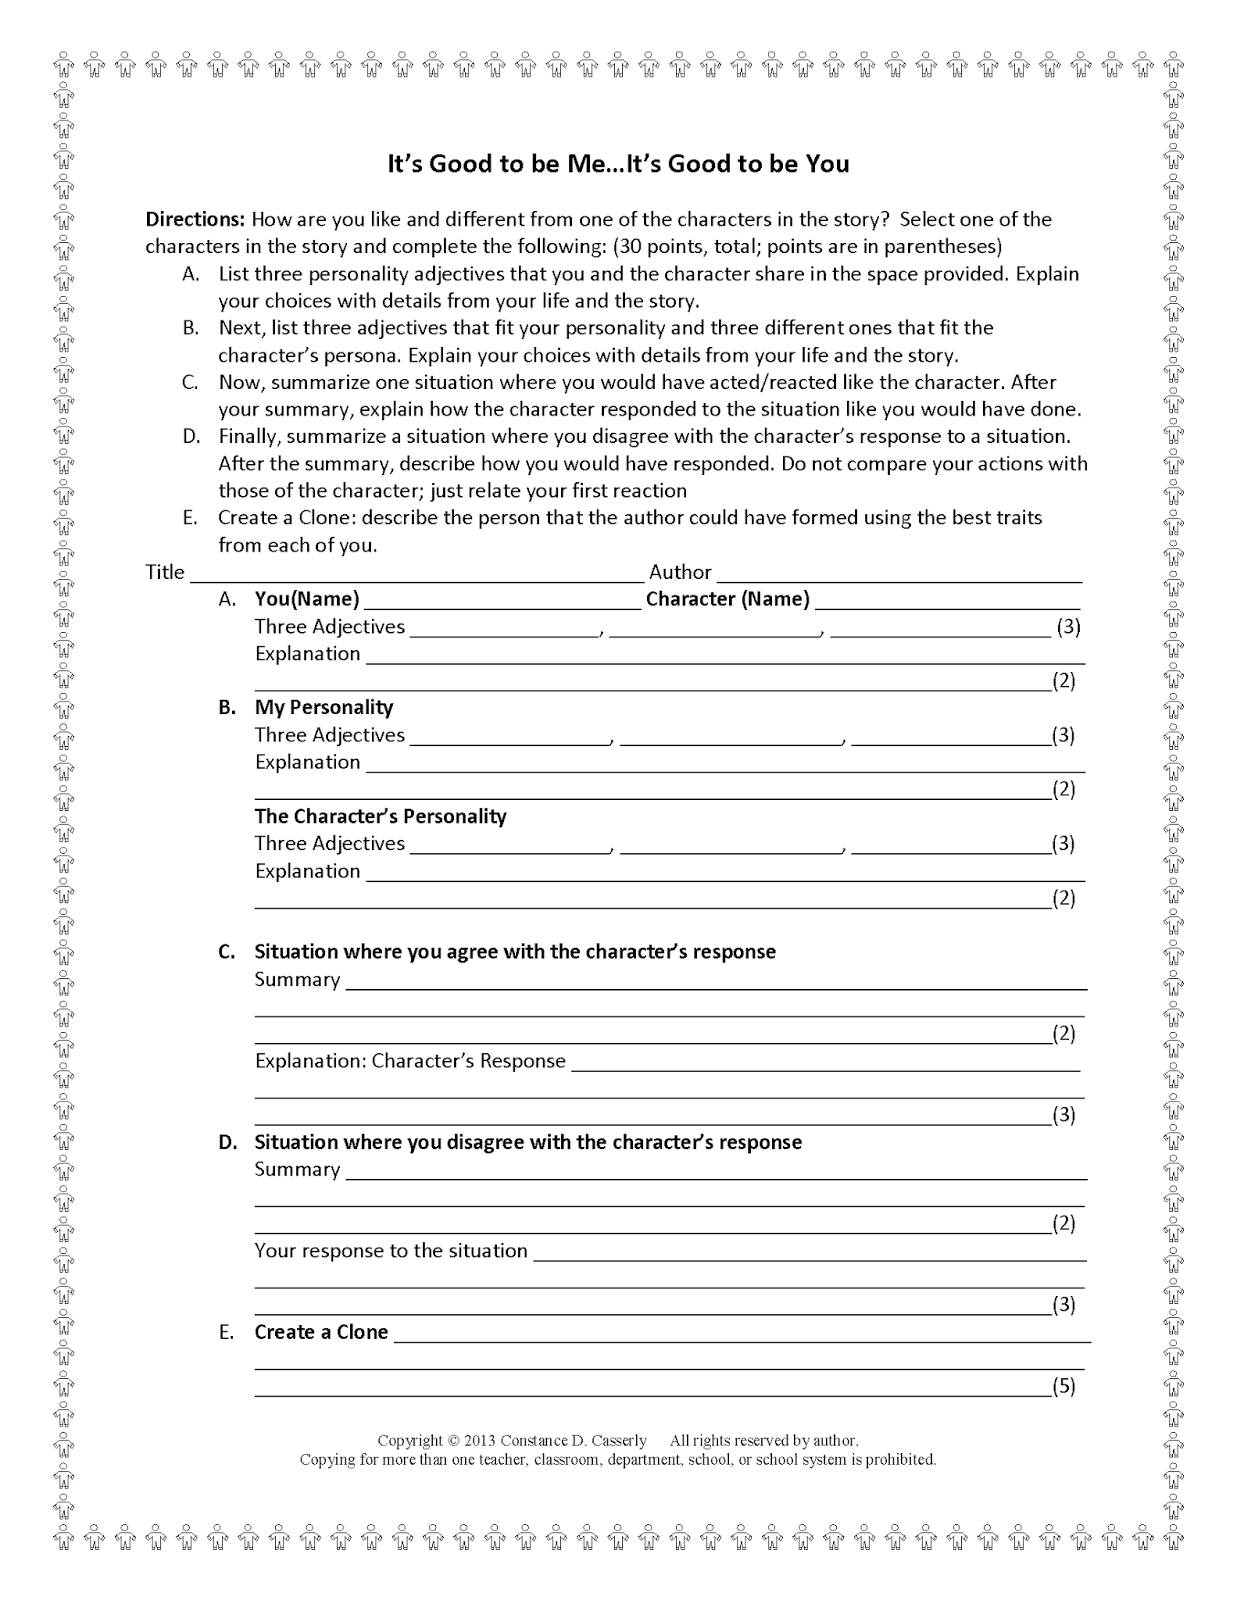 worksheet Get To Know You Worksheet get to know you worksheets activities for analyzing character